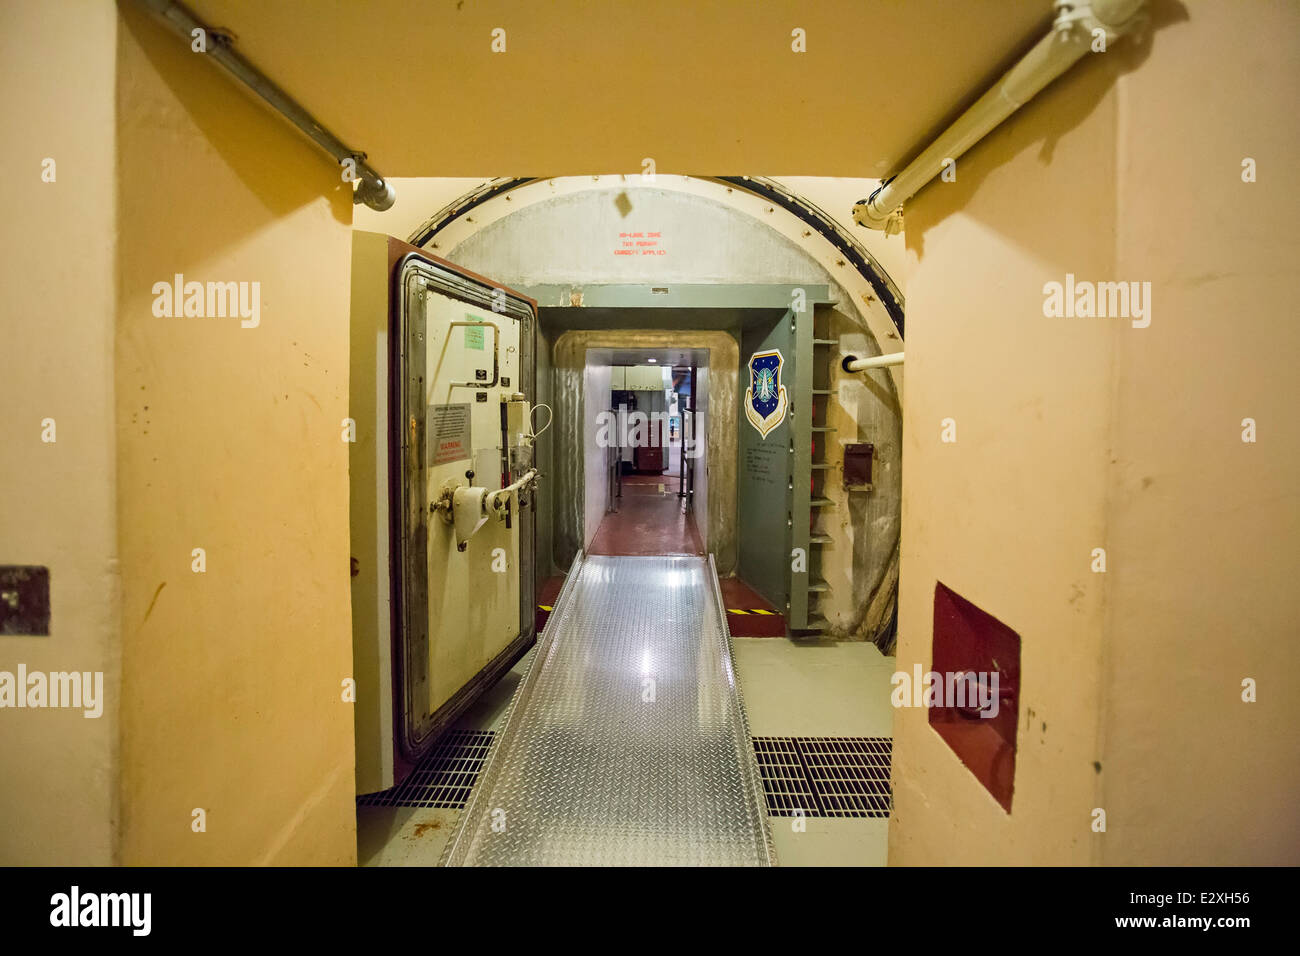 The Ronald Reagan Minuteman Missile State Historic Site, a launch control facility that controlled 10 nuclear missiles. - Stock Image